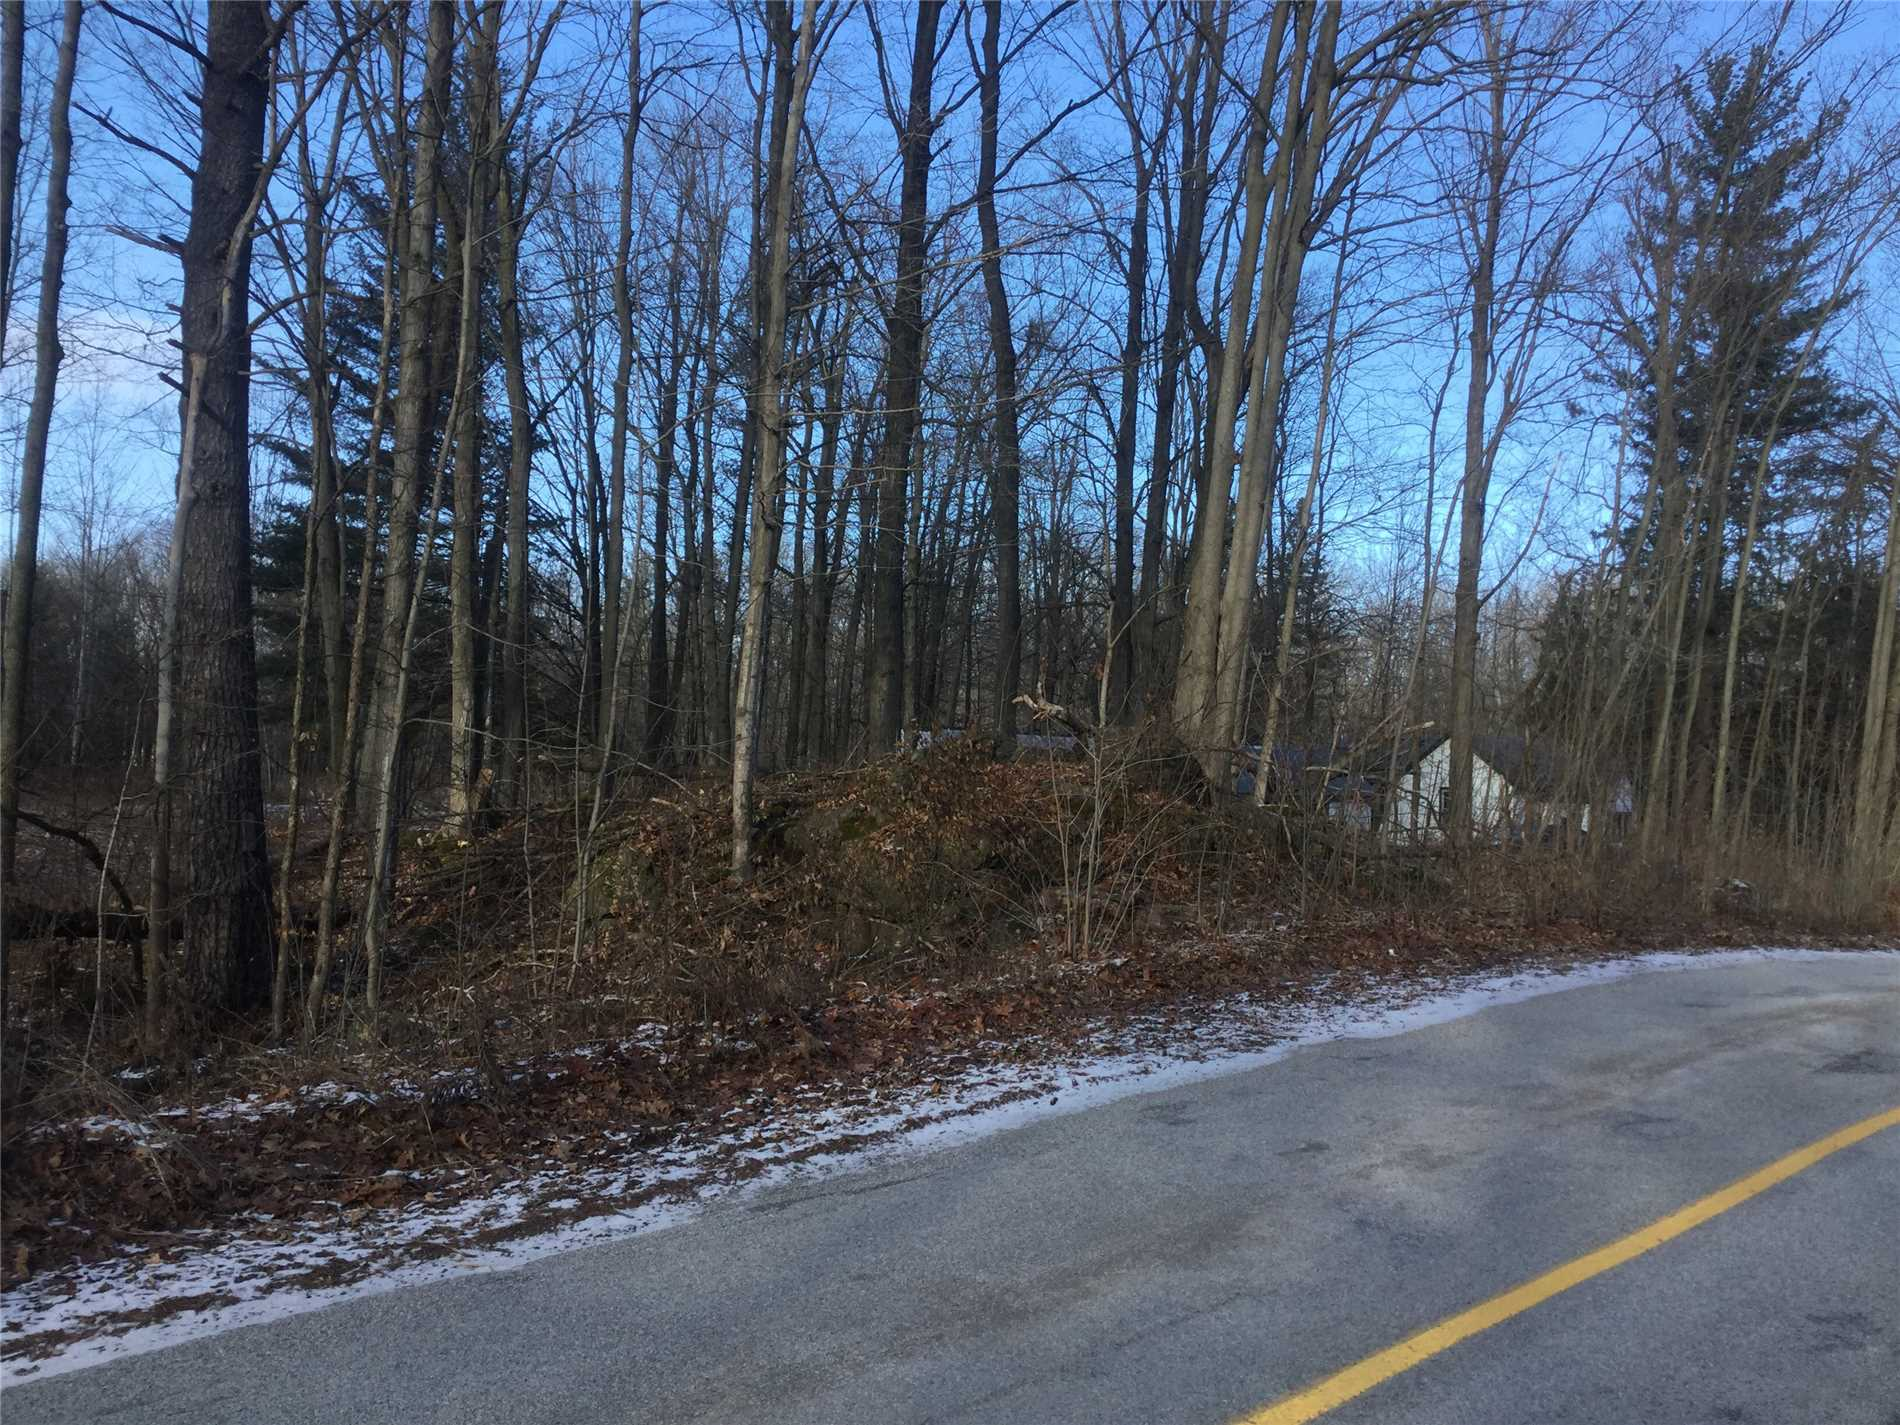 Opportunity To Build New Custom Home In Tranquil Setting On 3+/- Acres Minutes From 401 Exit At Guelph Line And The Village Of Campbellville.  Seller Does Not Warranty Any Lot Measurements Or Uses Of Land.  Buyer To Do Own Due Diligence.